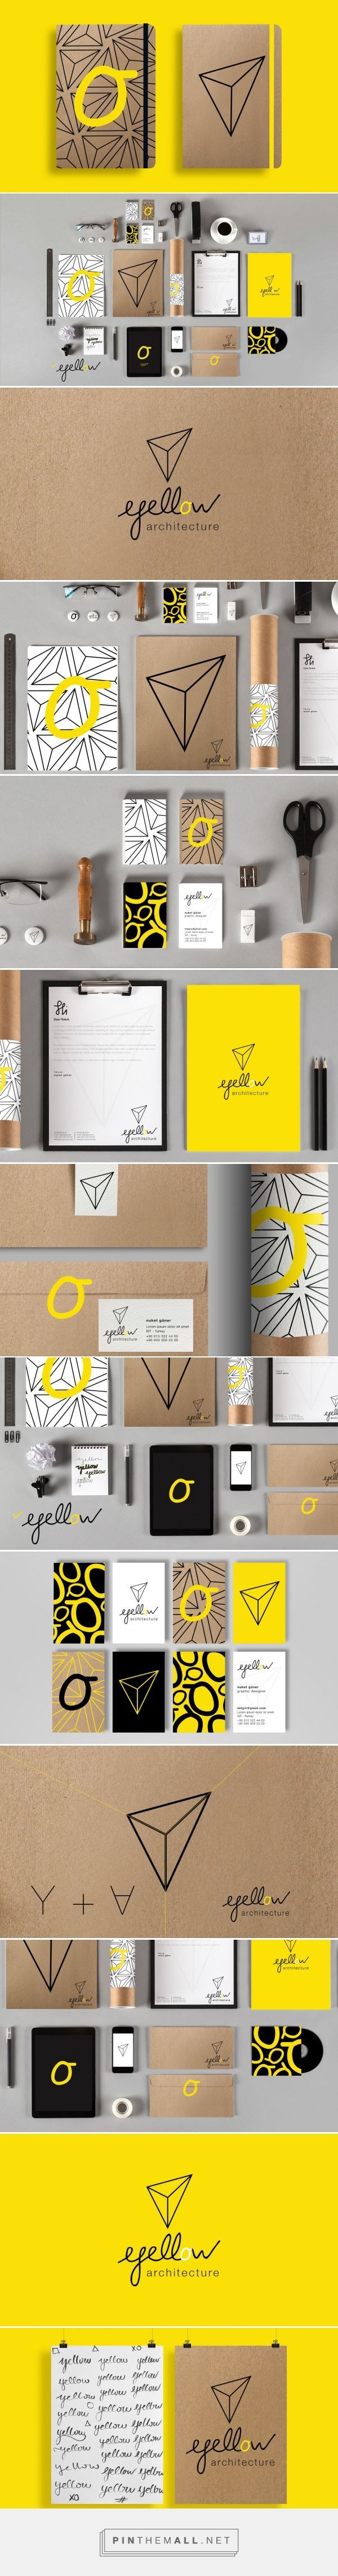 Yellow Architecture Branding by Nuket Guner Corlan